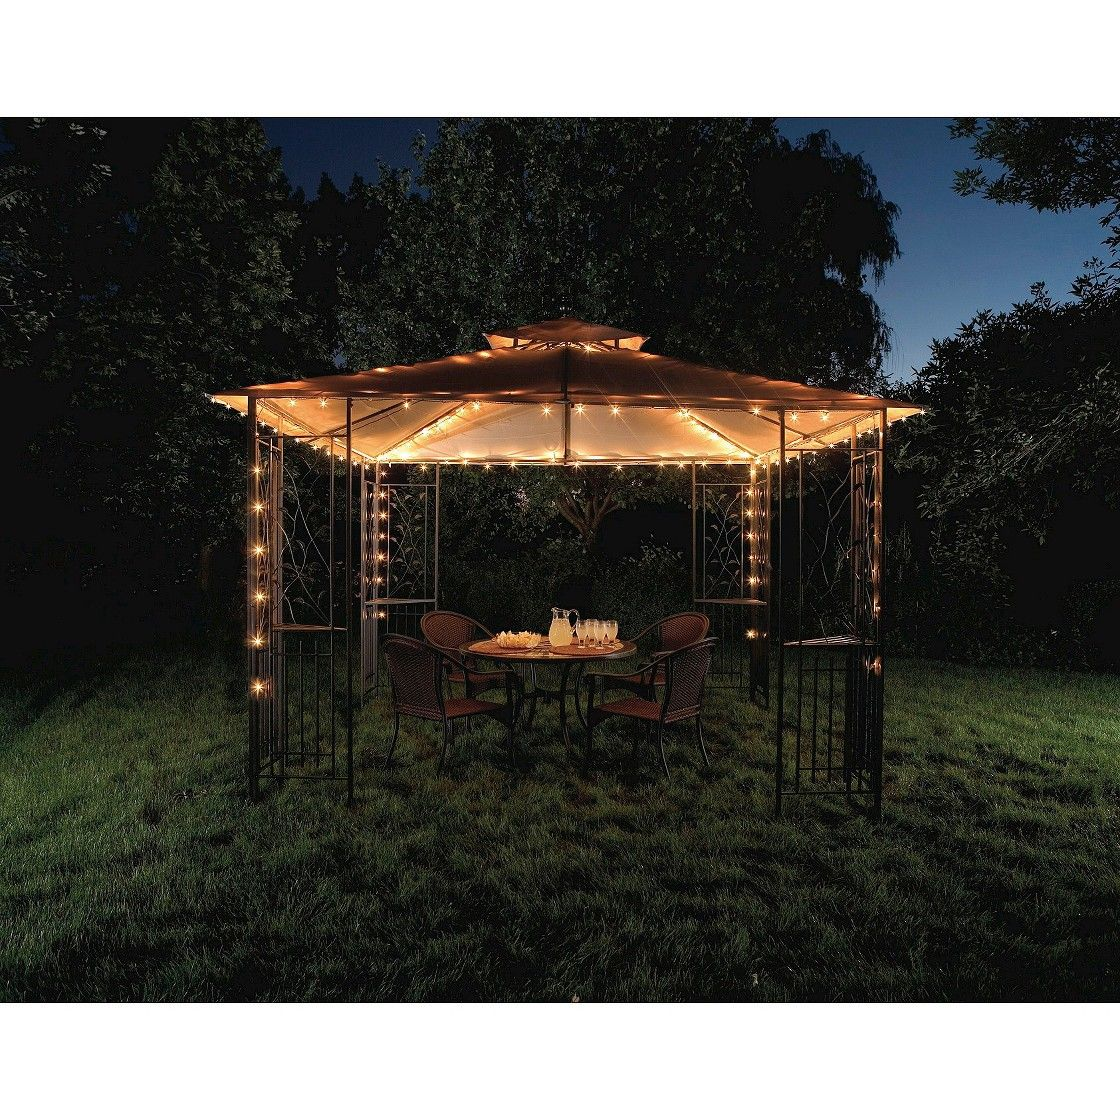 Outdoor Gazebo Lighting Custom Threshold  Ul 140Ct Gazebo Light  For The Home  Pinterest